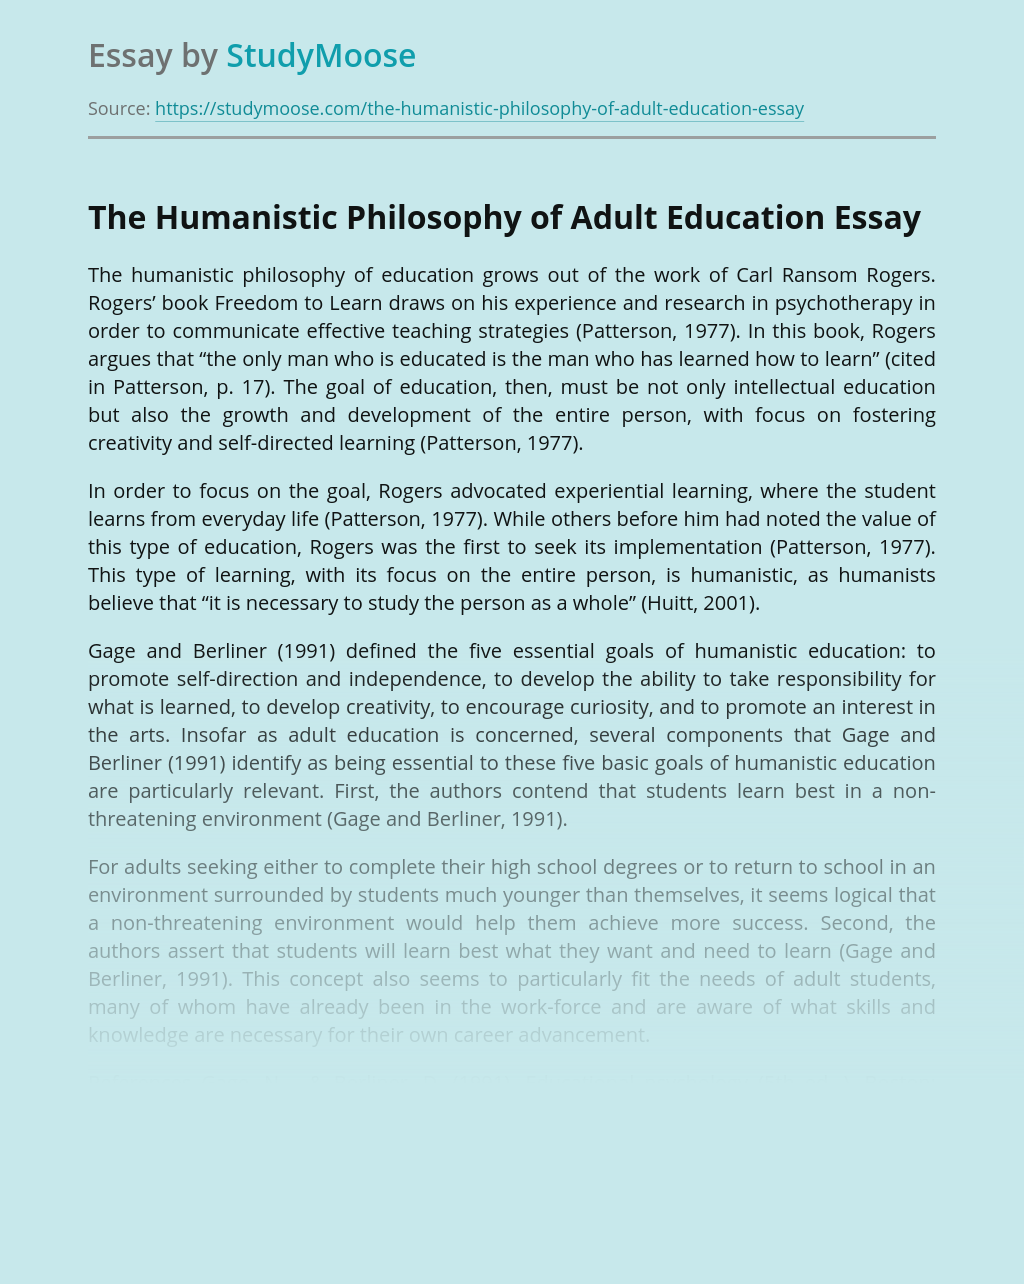 The Humanistic Philosophy of Adult Education